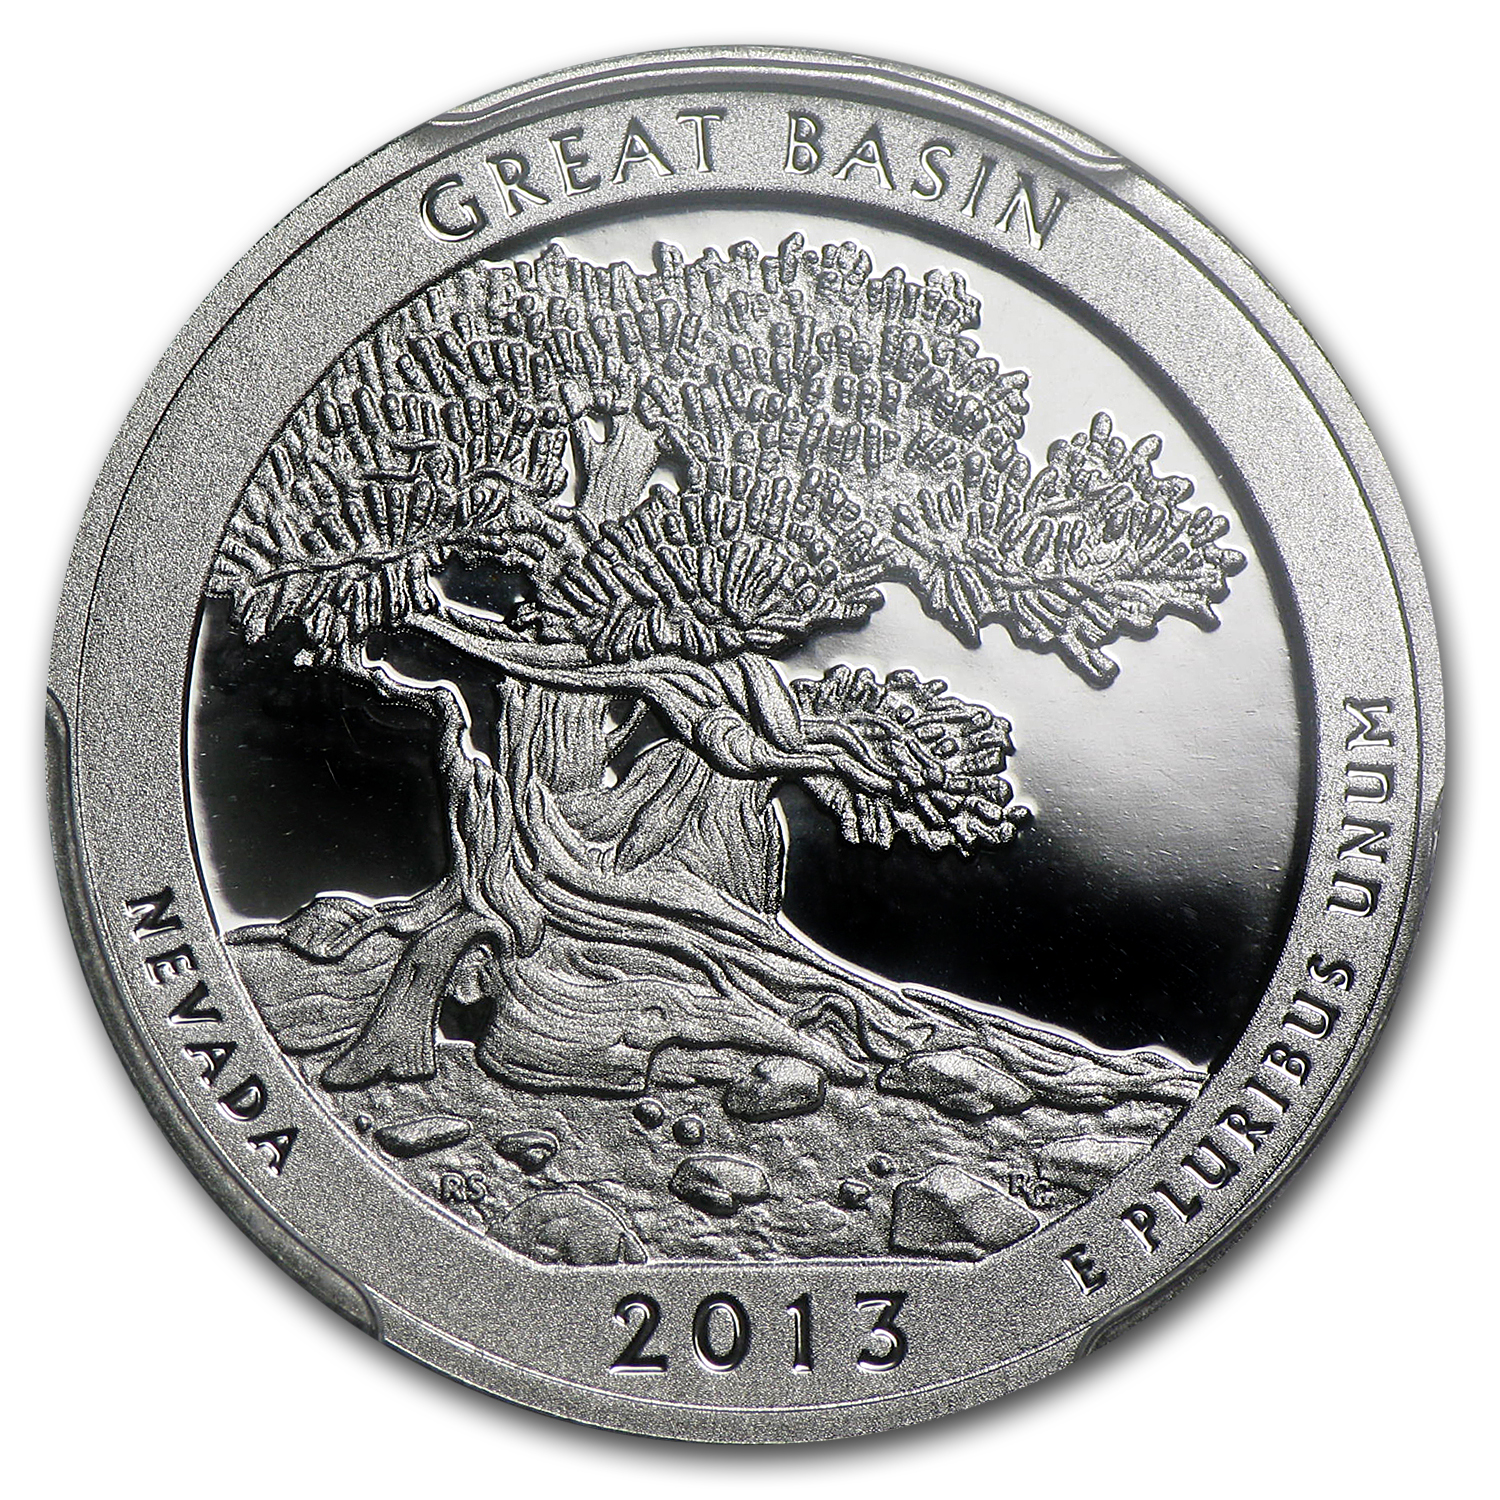 2013-S Silver Proof Quarter ATB Great Basin PR-69 DCAM (FS)